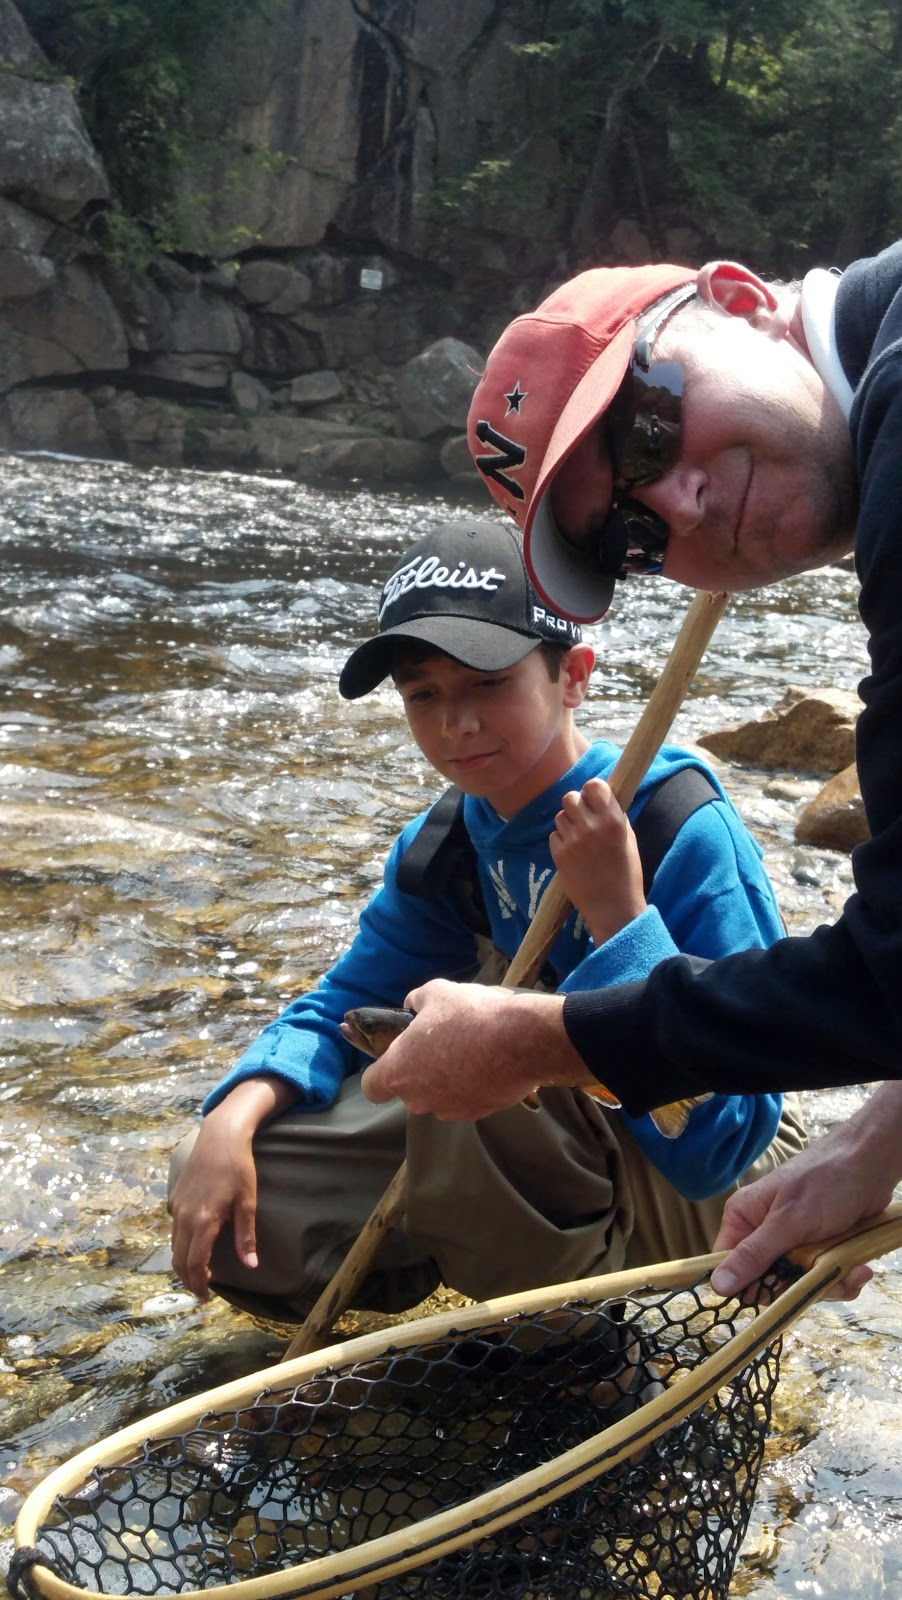 Fly fish new england fishing reports like an oasis for New england fishing